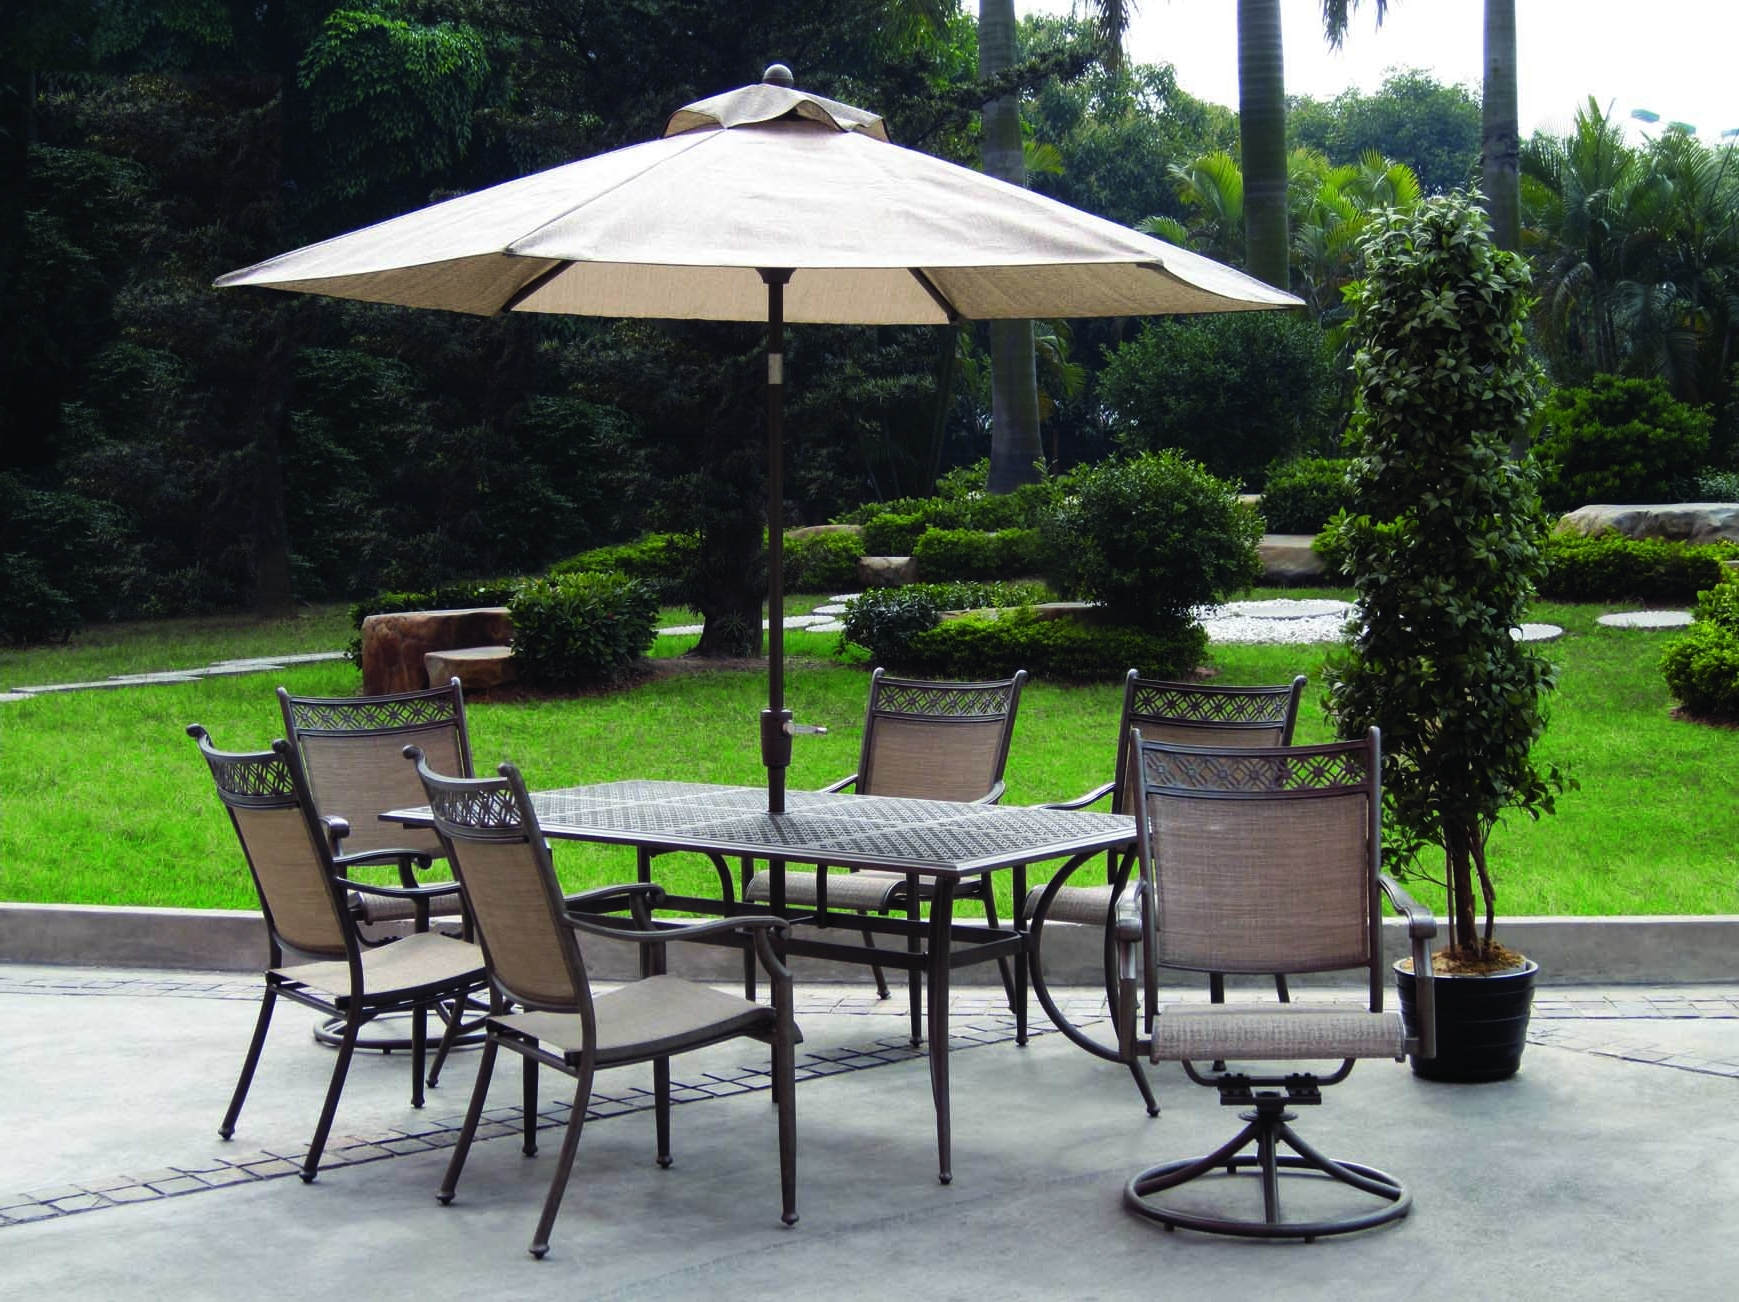 Most Recent Furniture: Snazzy Hampton Bay Outdoor Furniture Ideas — Hiredmd In Patio Furniture Sets With Umbrellas (View 8 of 20)